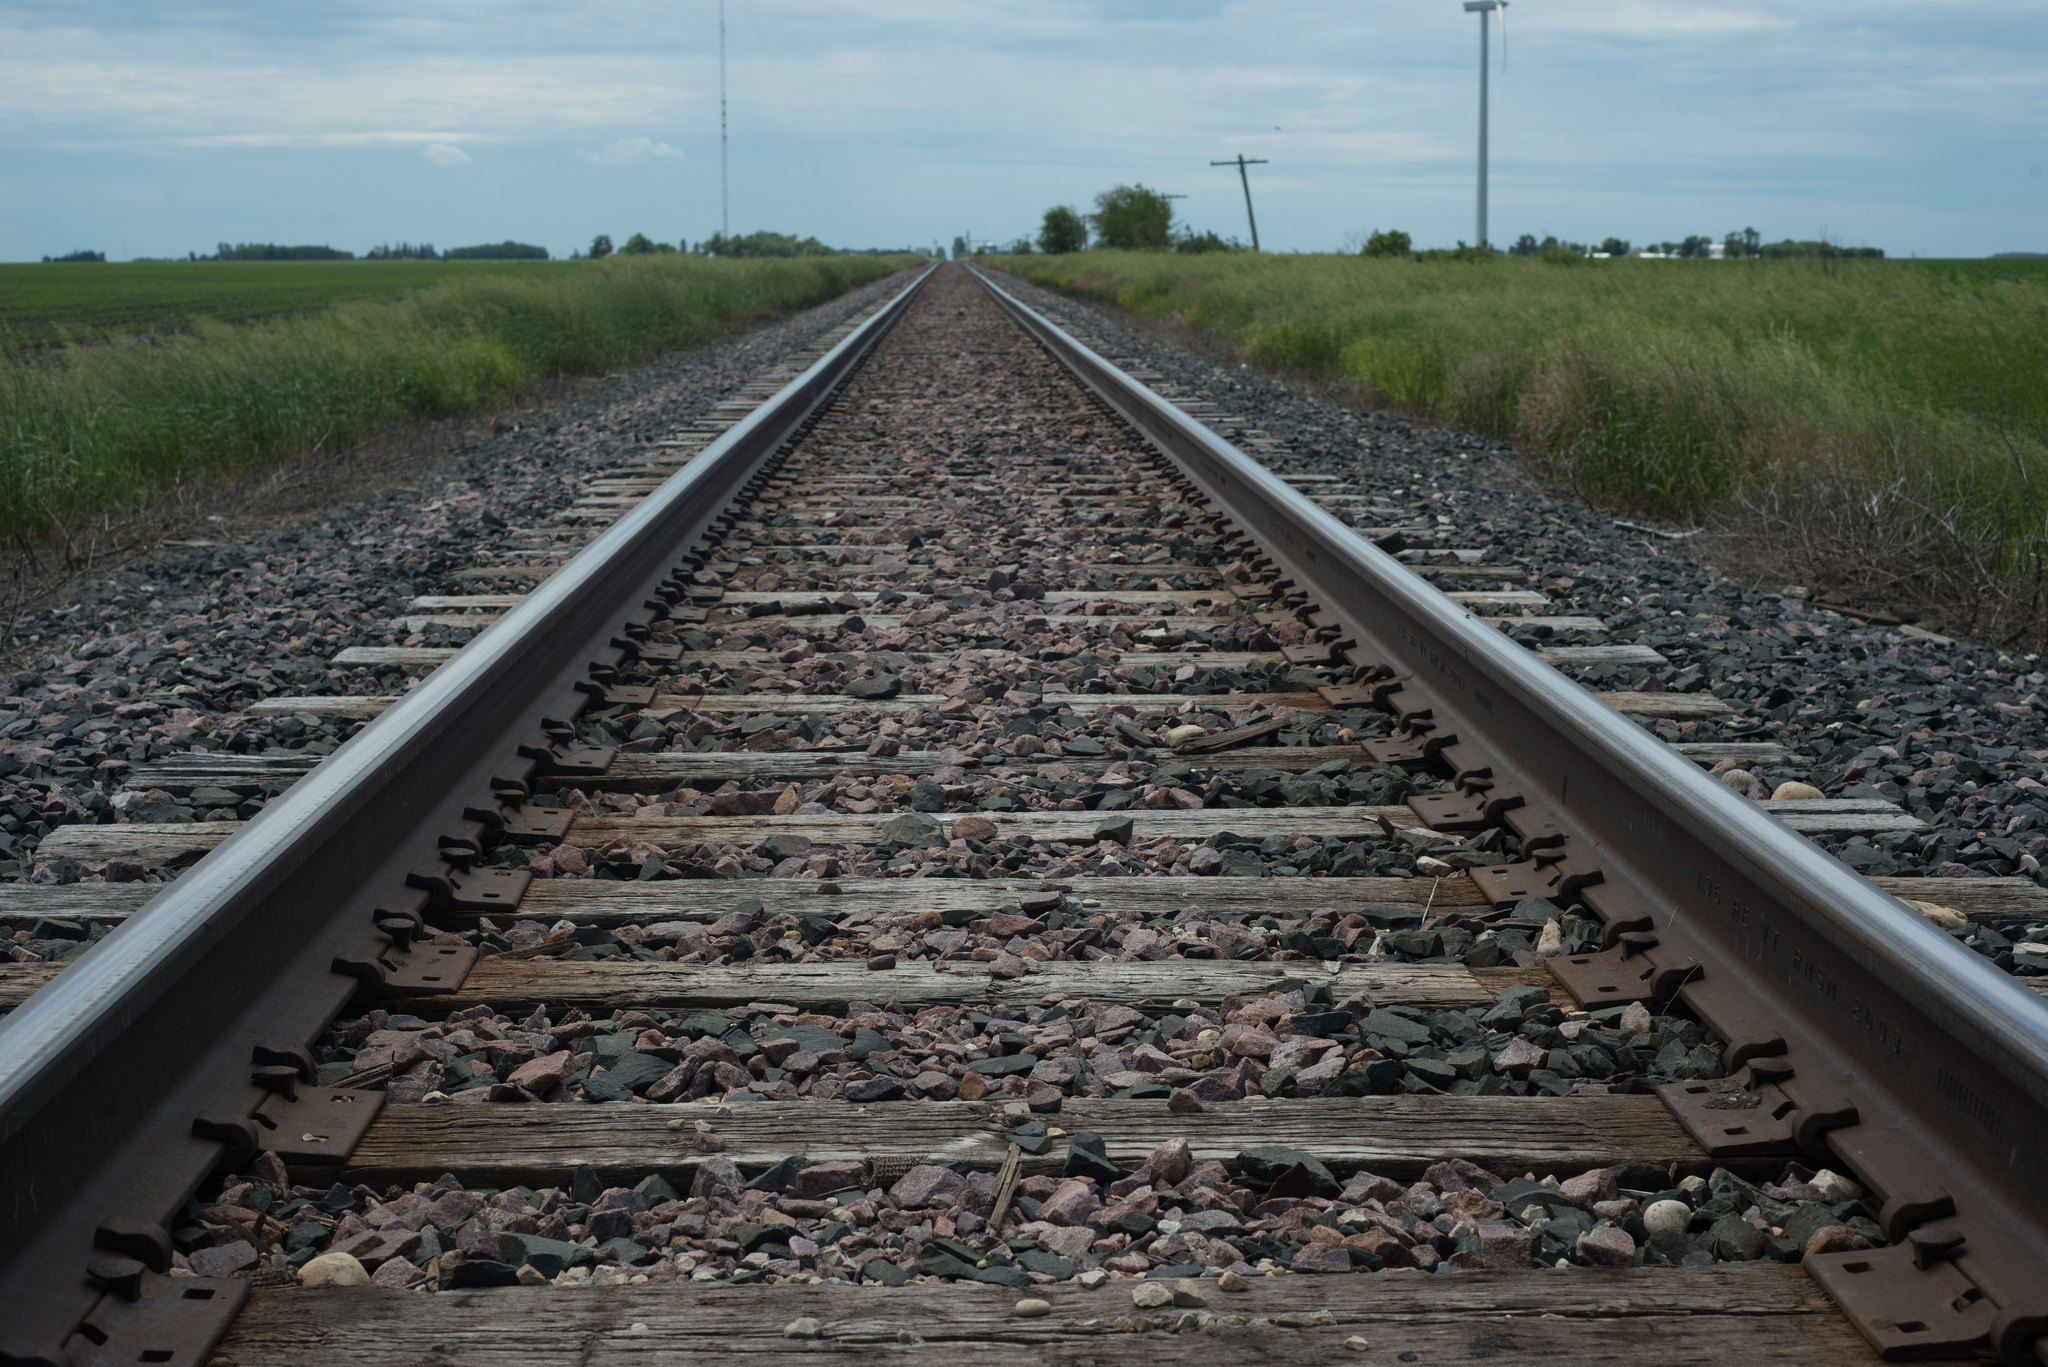 Close-up of railroad tracks running through the country